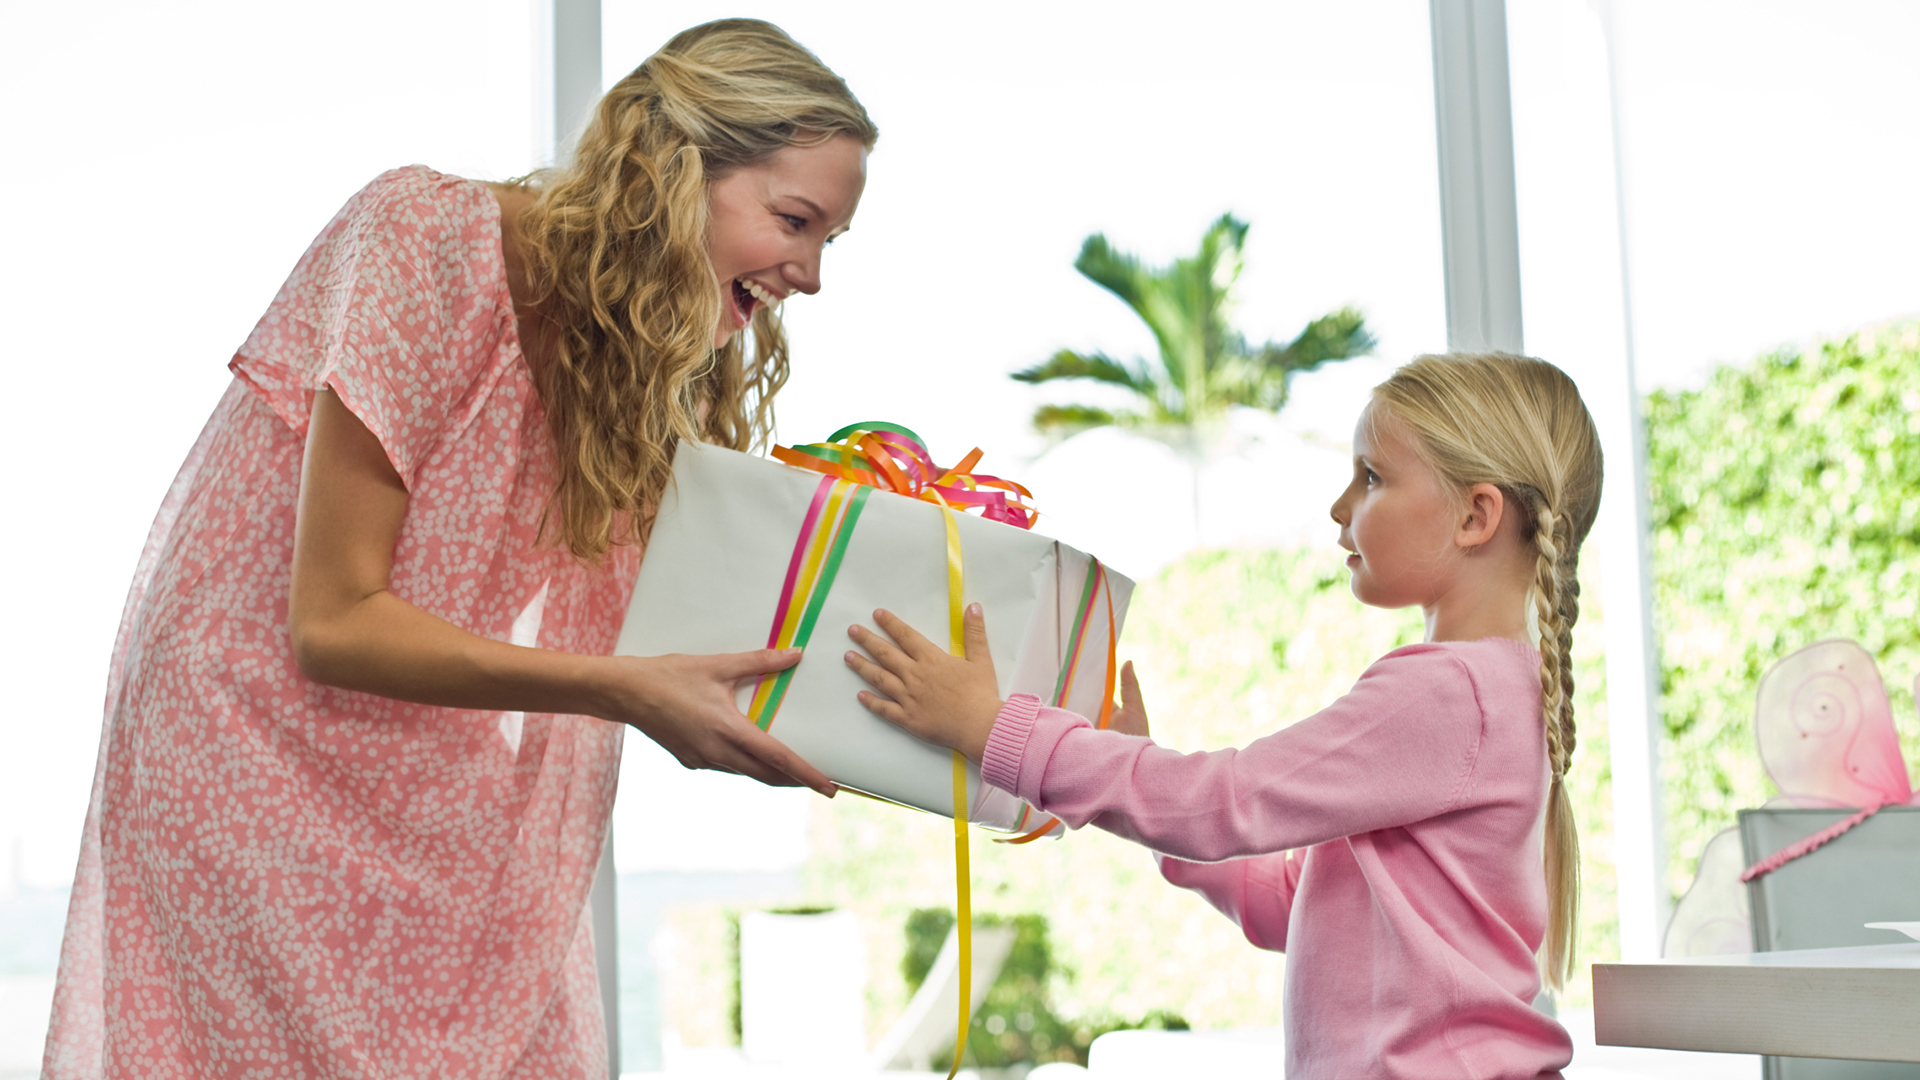 Mother getting gift from daughter | Sheknows.com